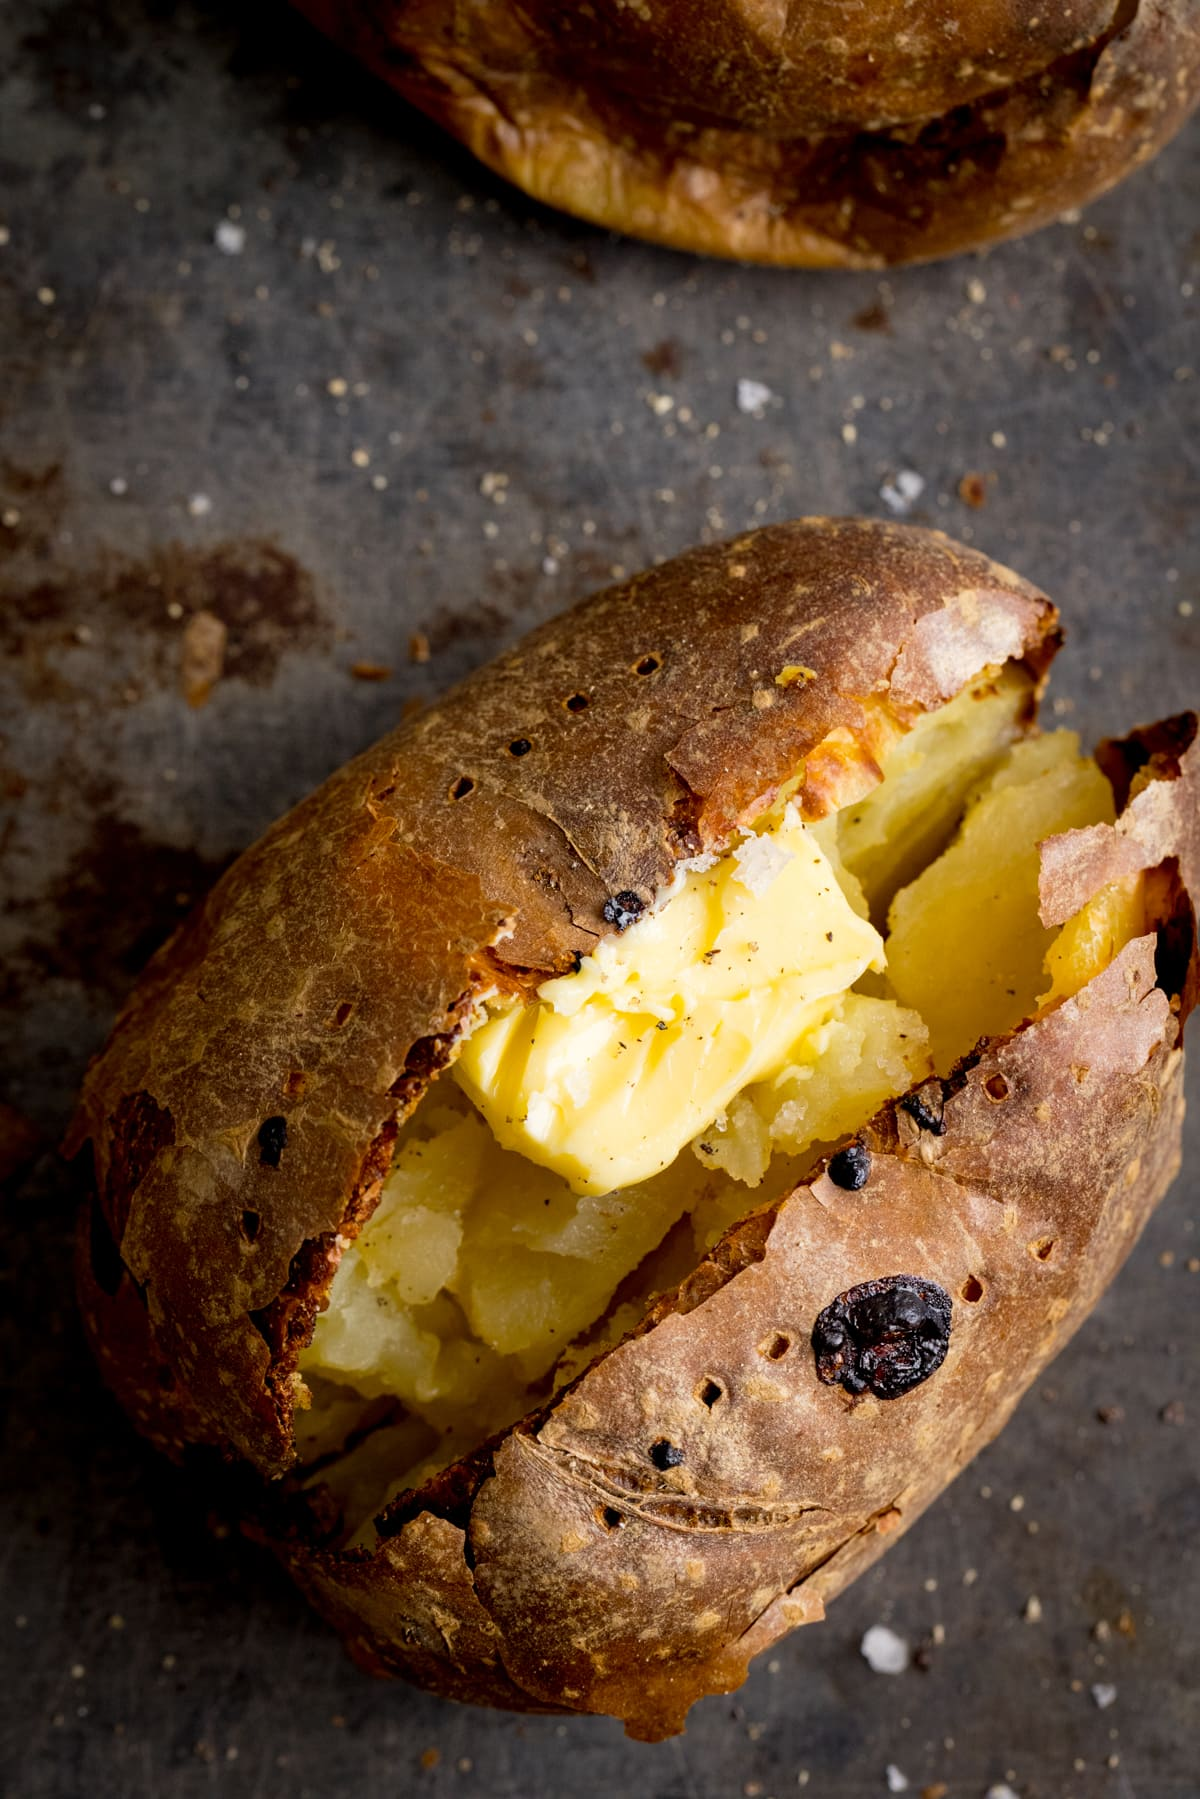 Overhead image of an open baked potato on a dark metal background. Potato was baked using method 2 of my baked potato experiment.